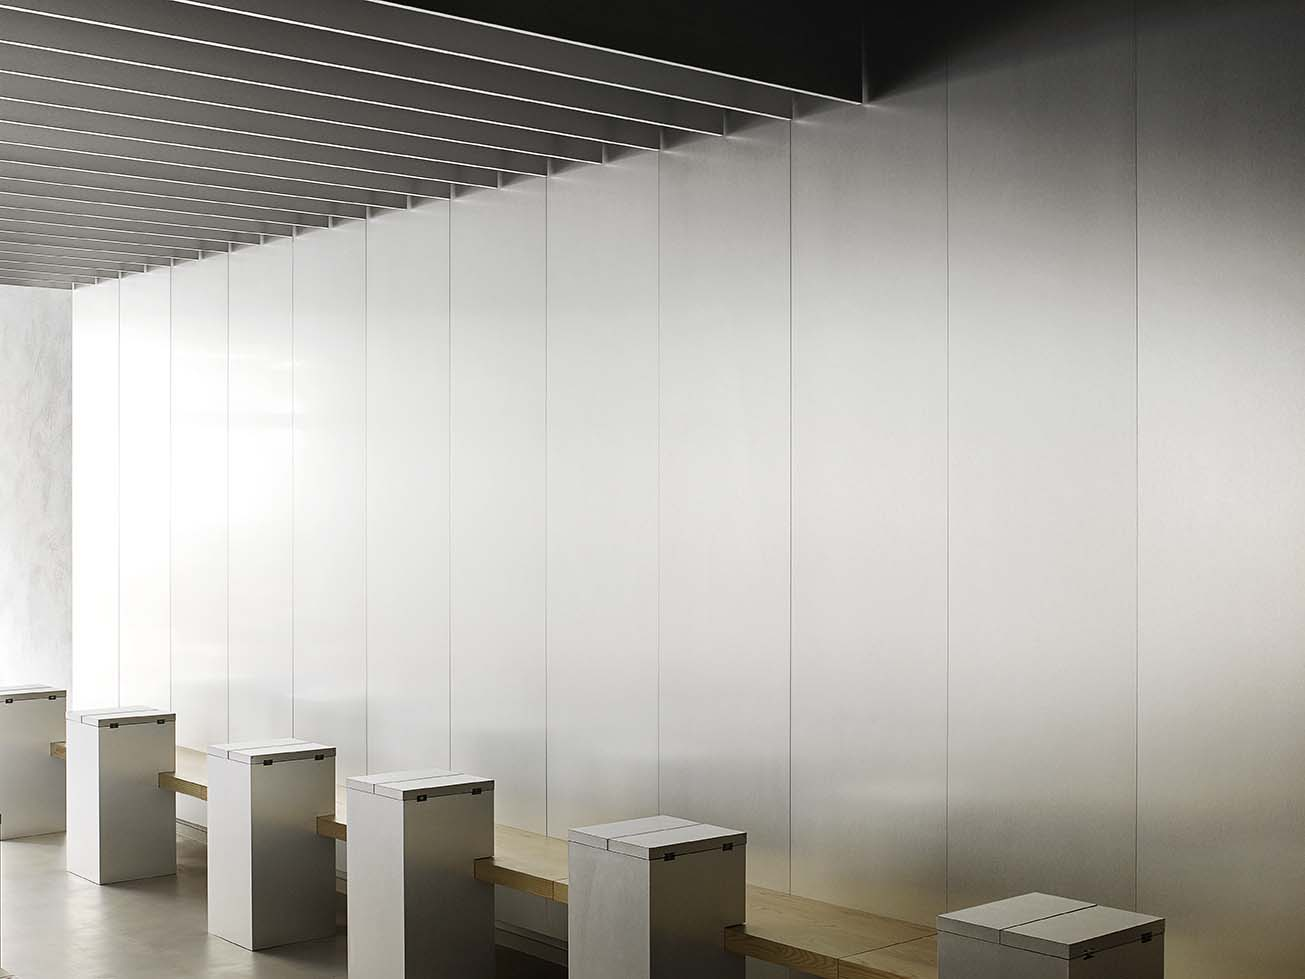 A room with an aluminium wall, wooden bench and small folding wooden tables